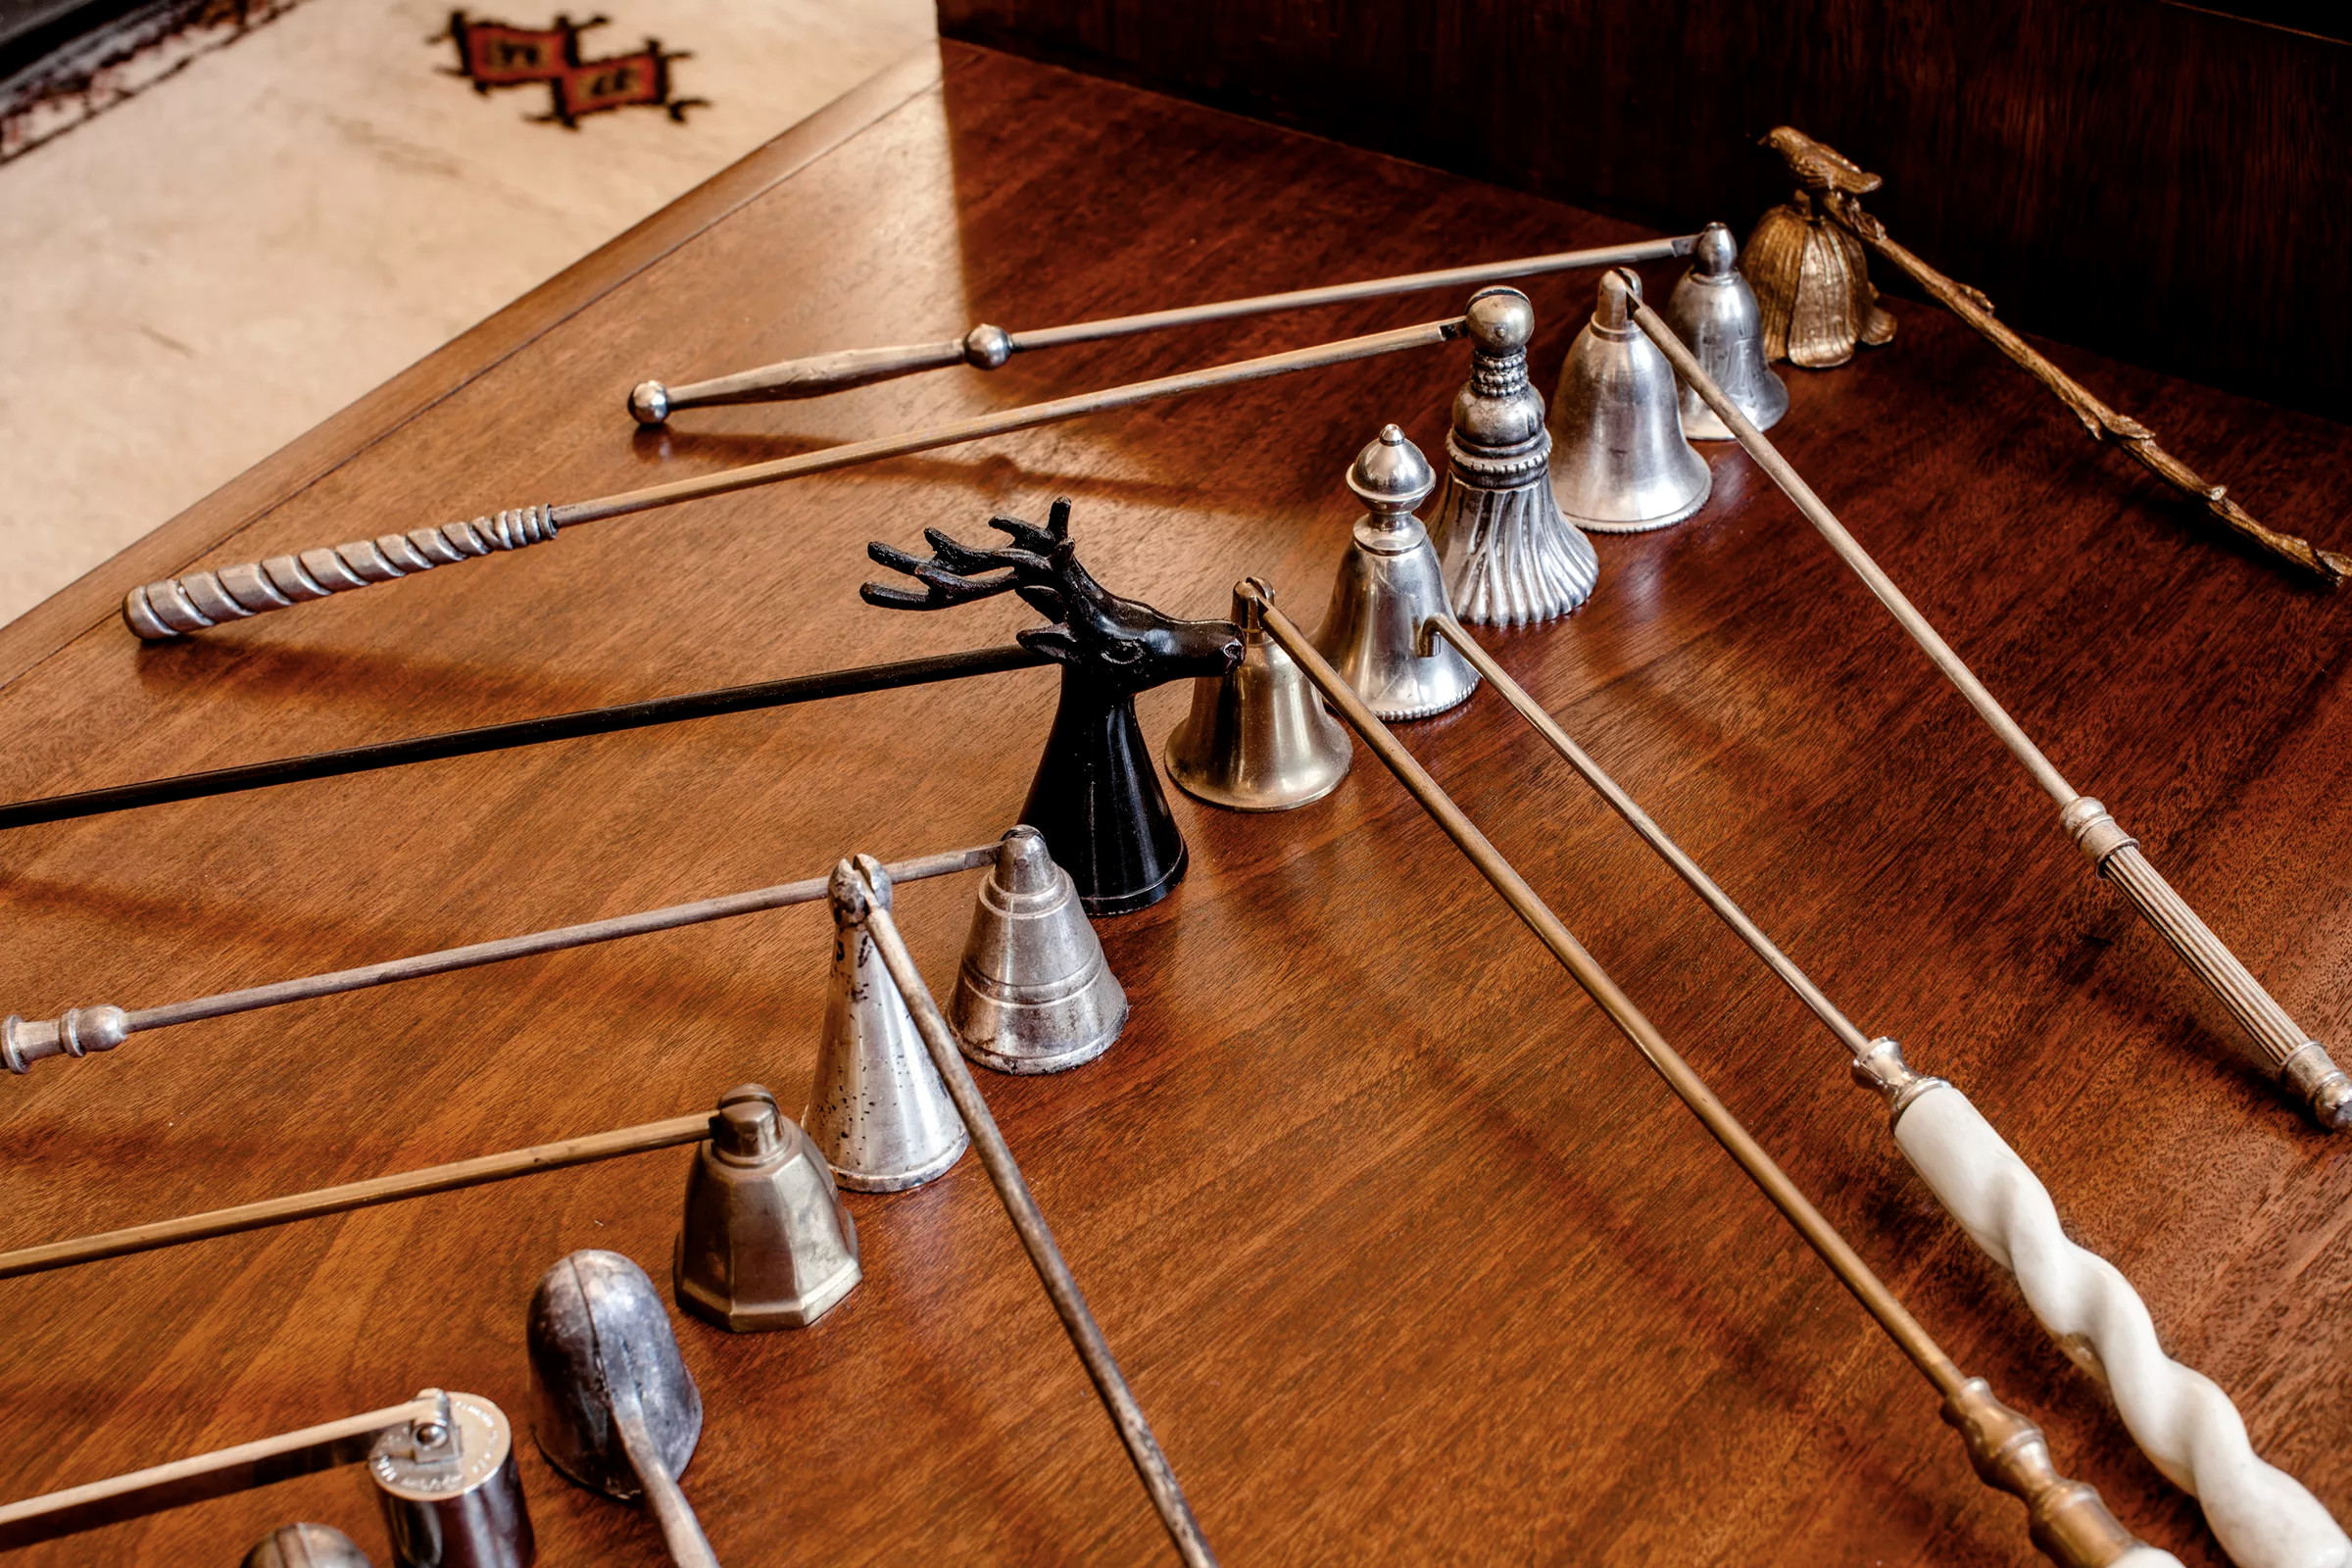 A collection of candle snuffers became a graphic display when grouped together.